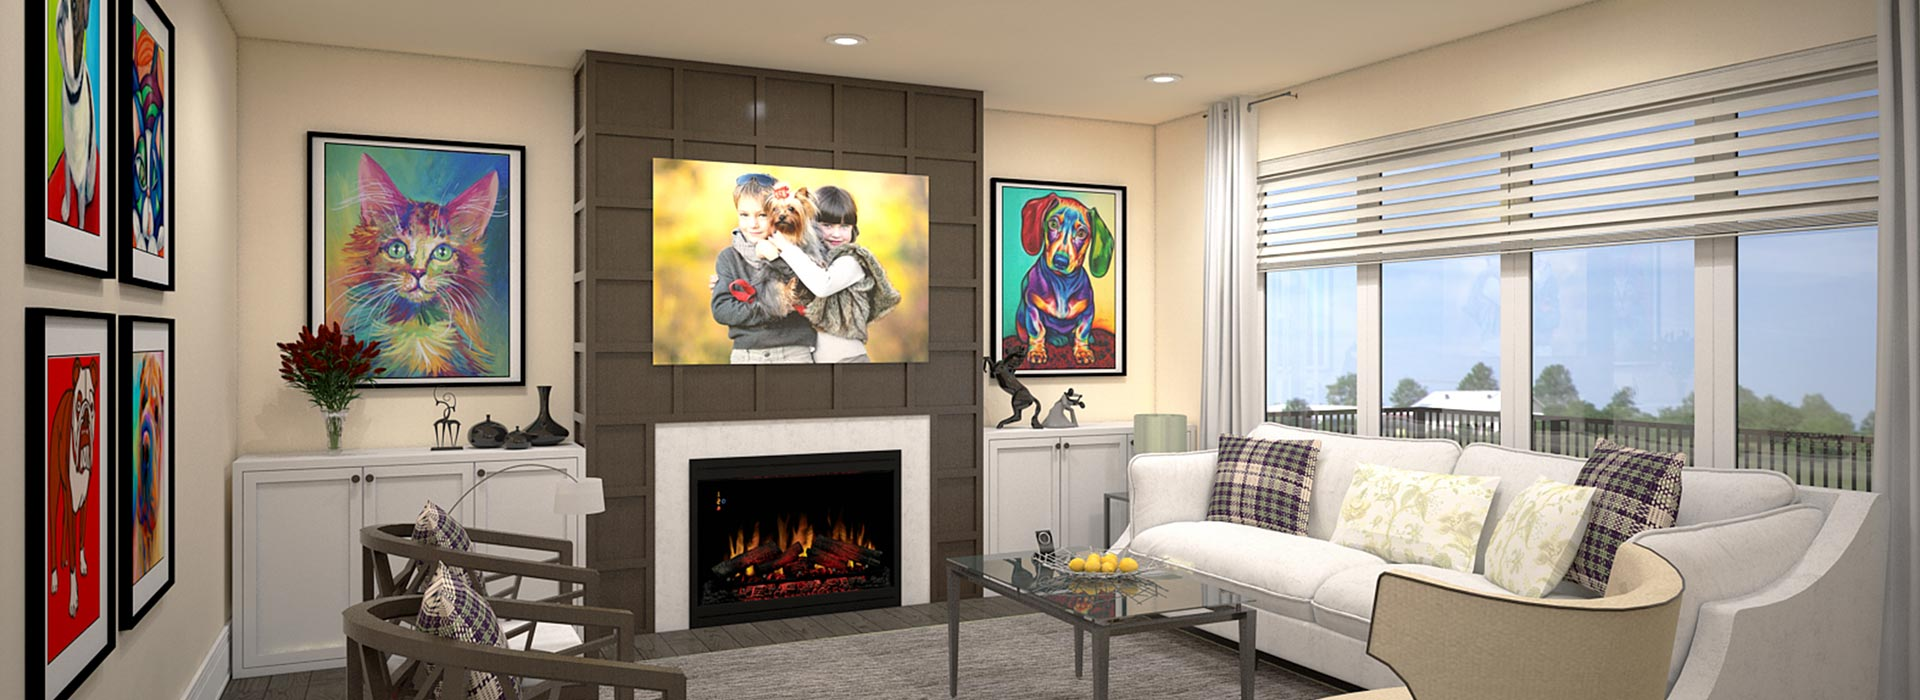 Picture of the Living Room of the Pet Friendly House